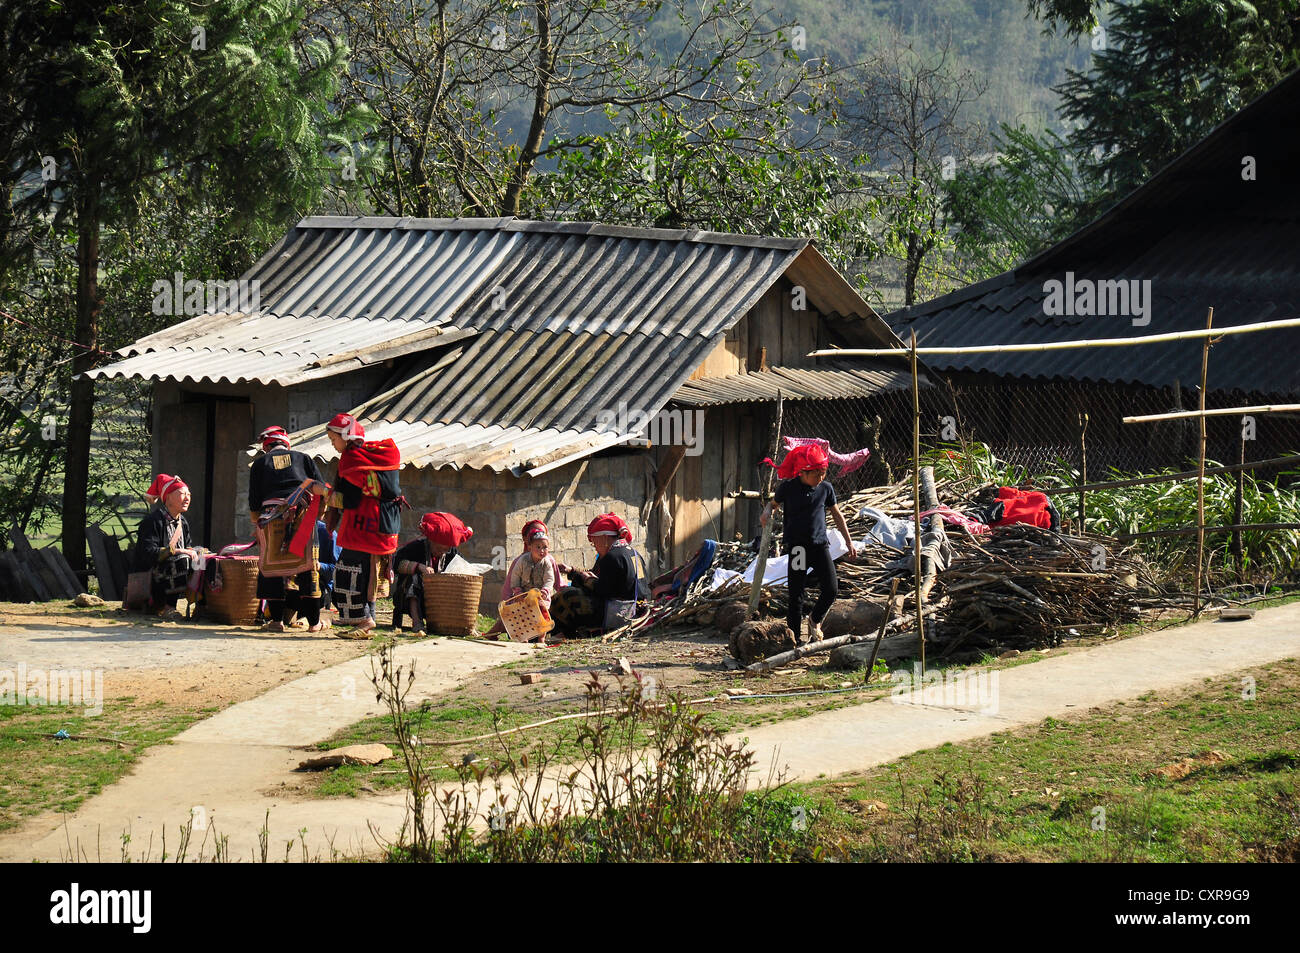 Members of the Red Dao ethnic minority in a rural village near Sa Pa, Northern Vietnam, Vietnam, Southeast Asia, - Stock Image